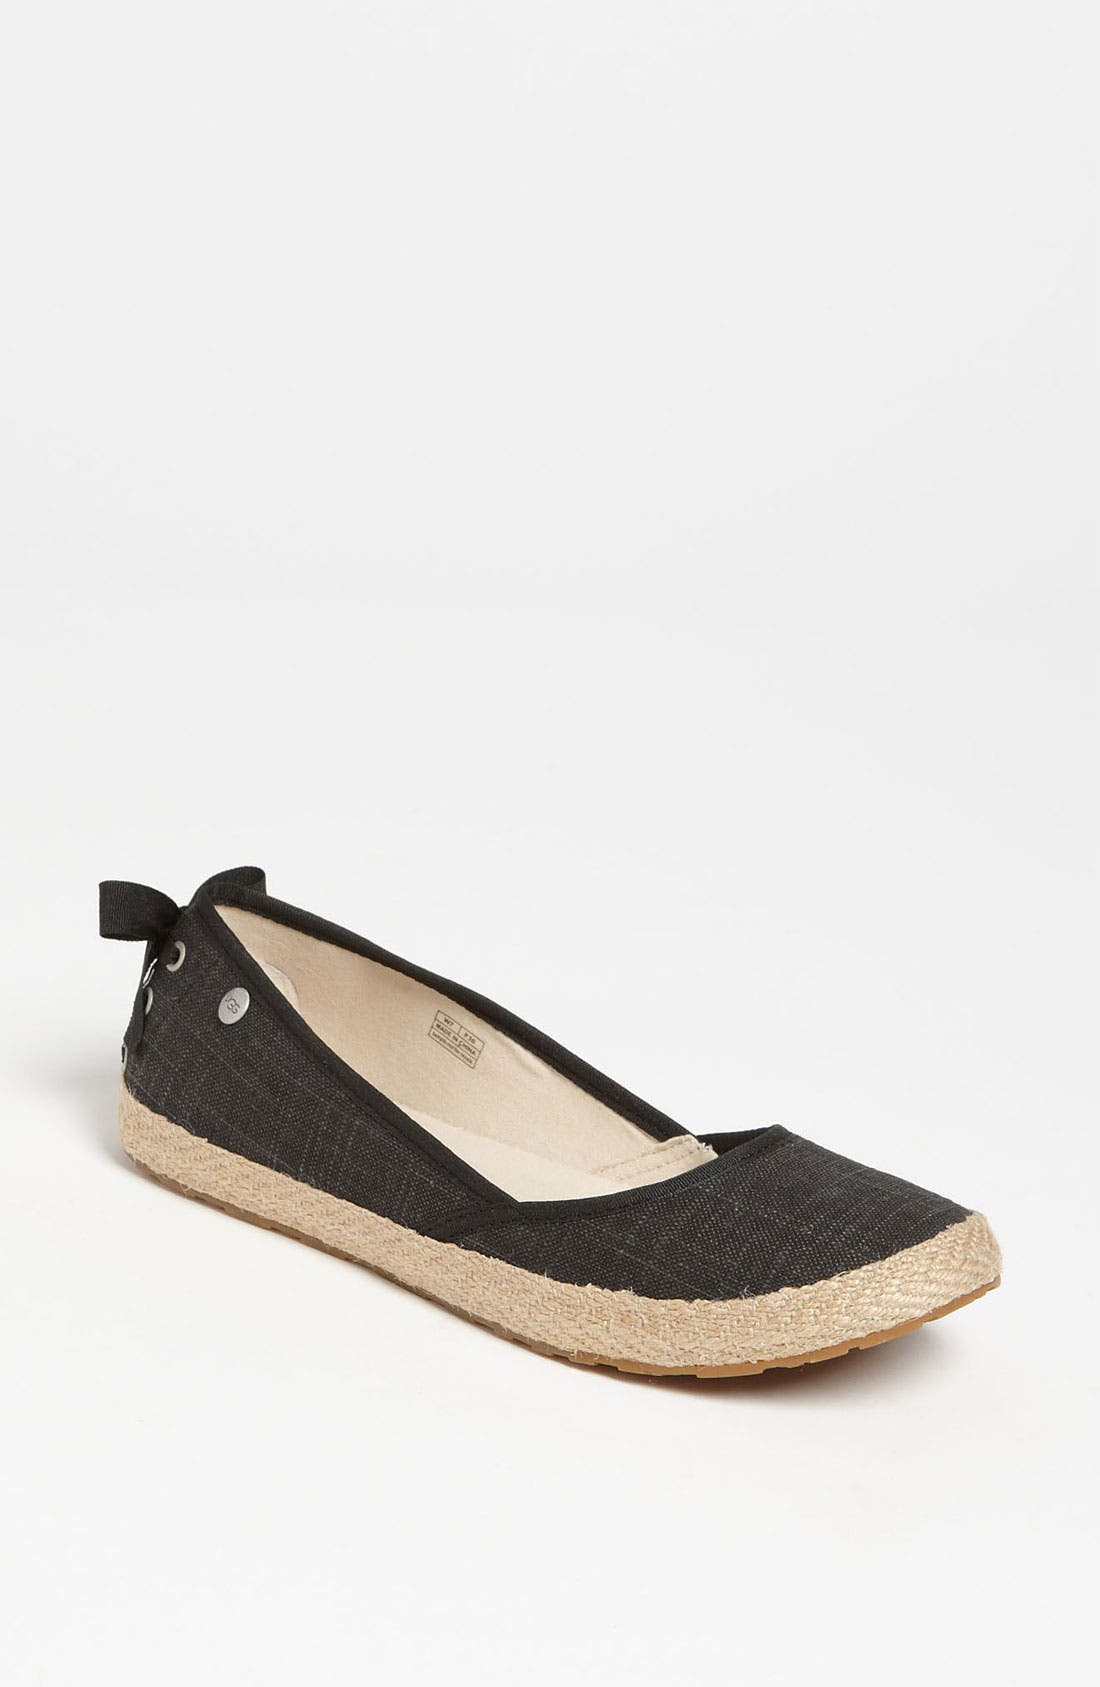 Alternate Image 1 Selected - UGG® Australia 'Indah' Flat (Women)